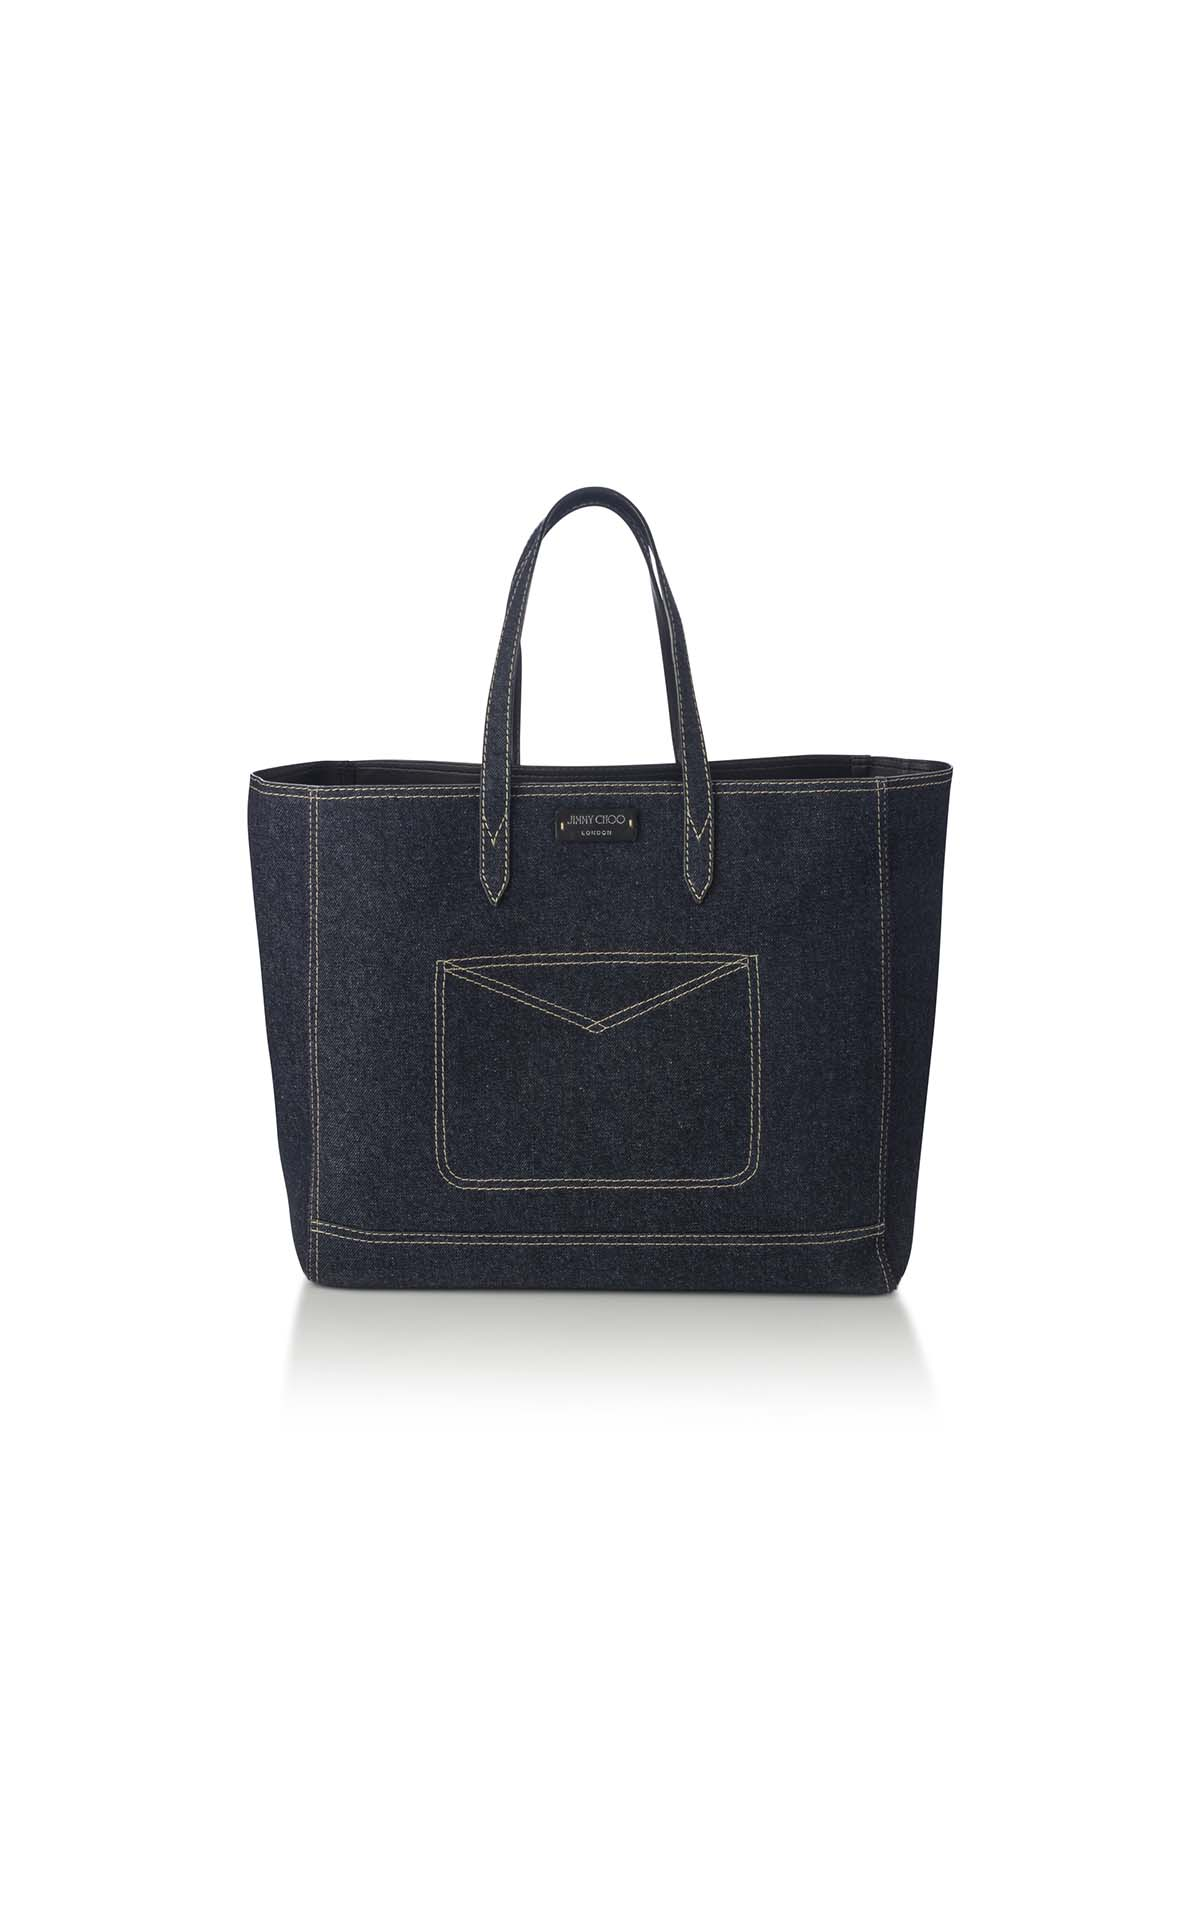 Jimmy Choo Tafira Denim Tote bag at The Bicester Village Shopping Collection